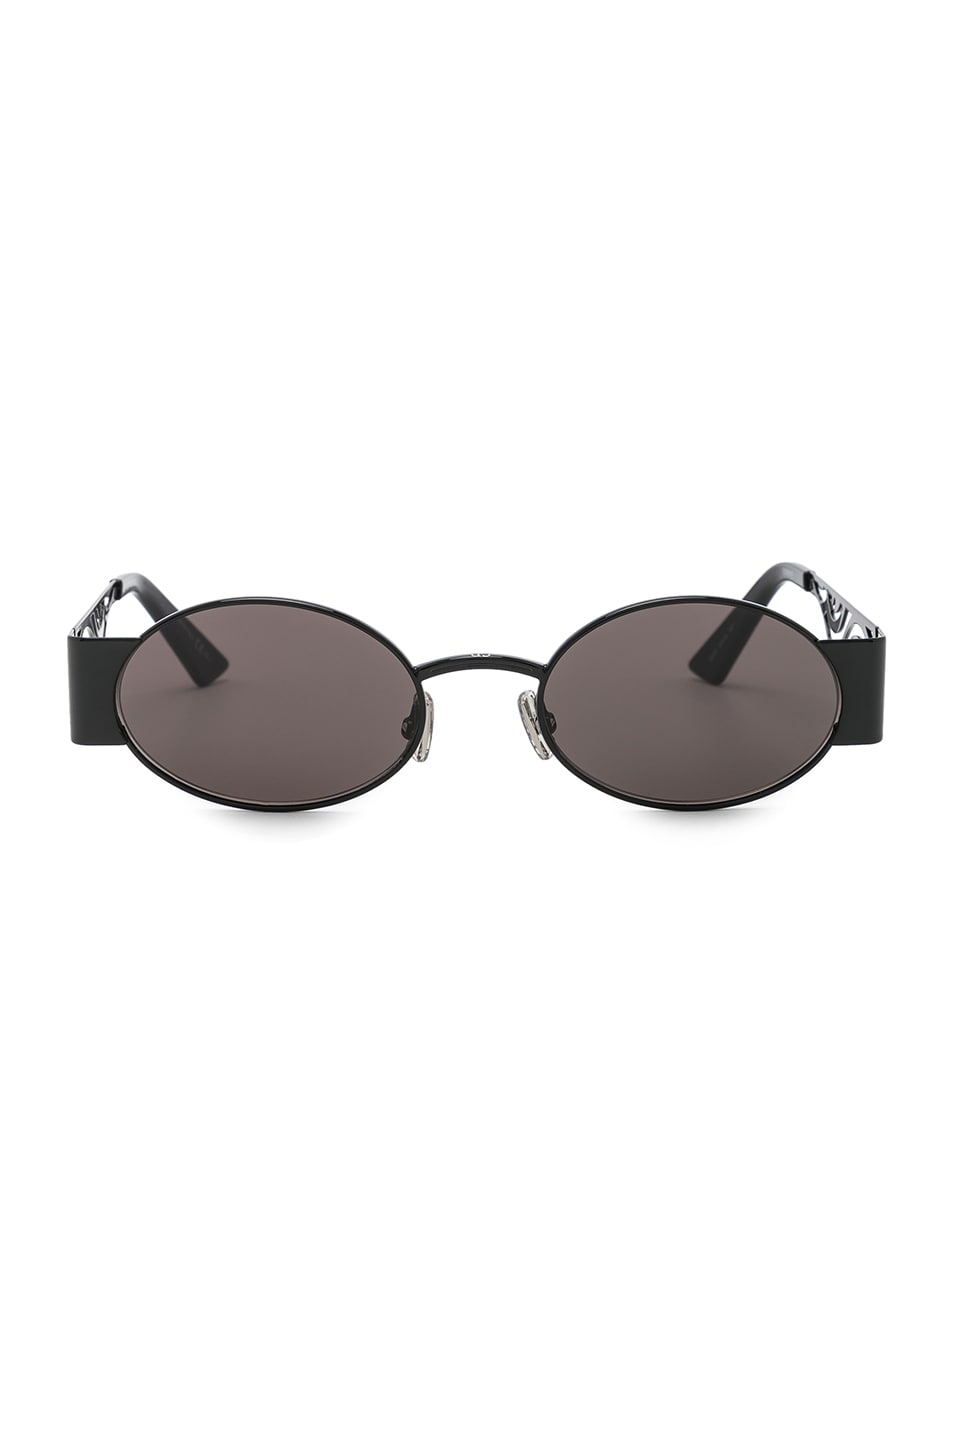 Image 1 of Dior Rave Sunglasses in Black & Gray